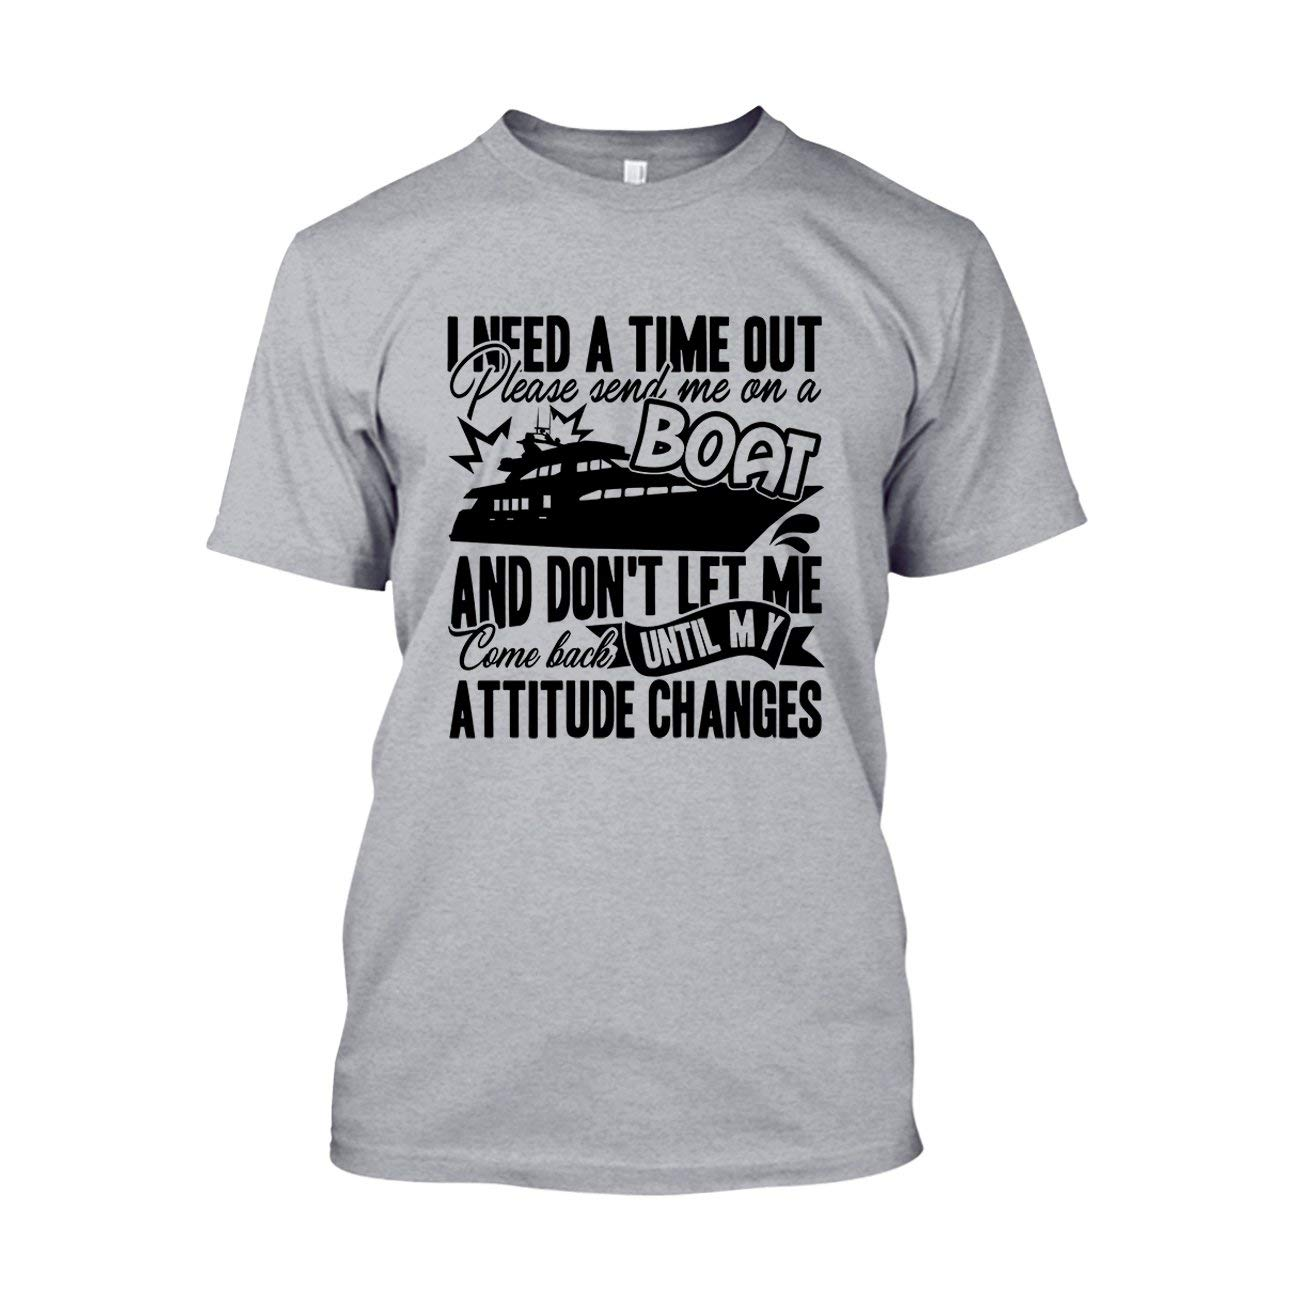 Boat T Shirt Please Send Me On A Boat Tee Shirt